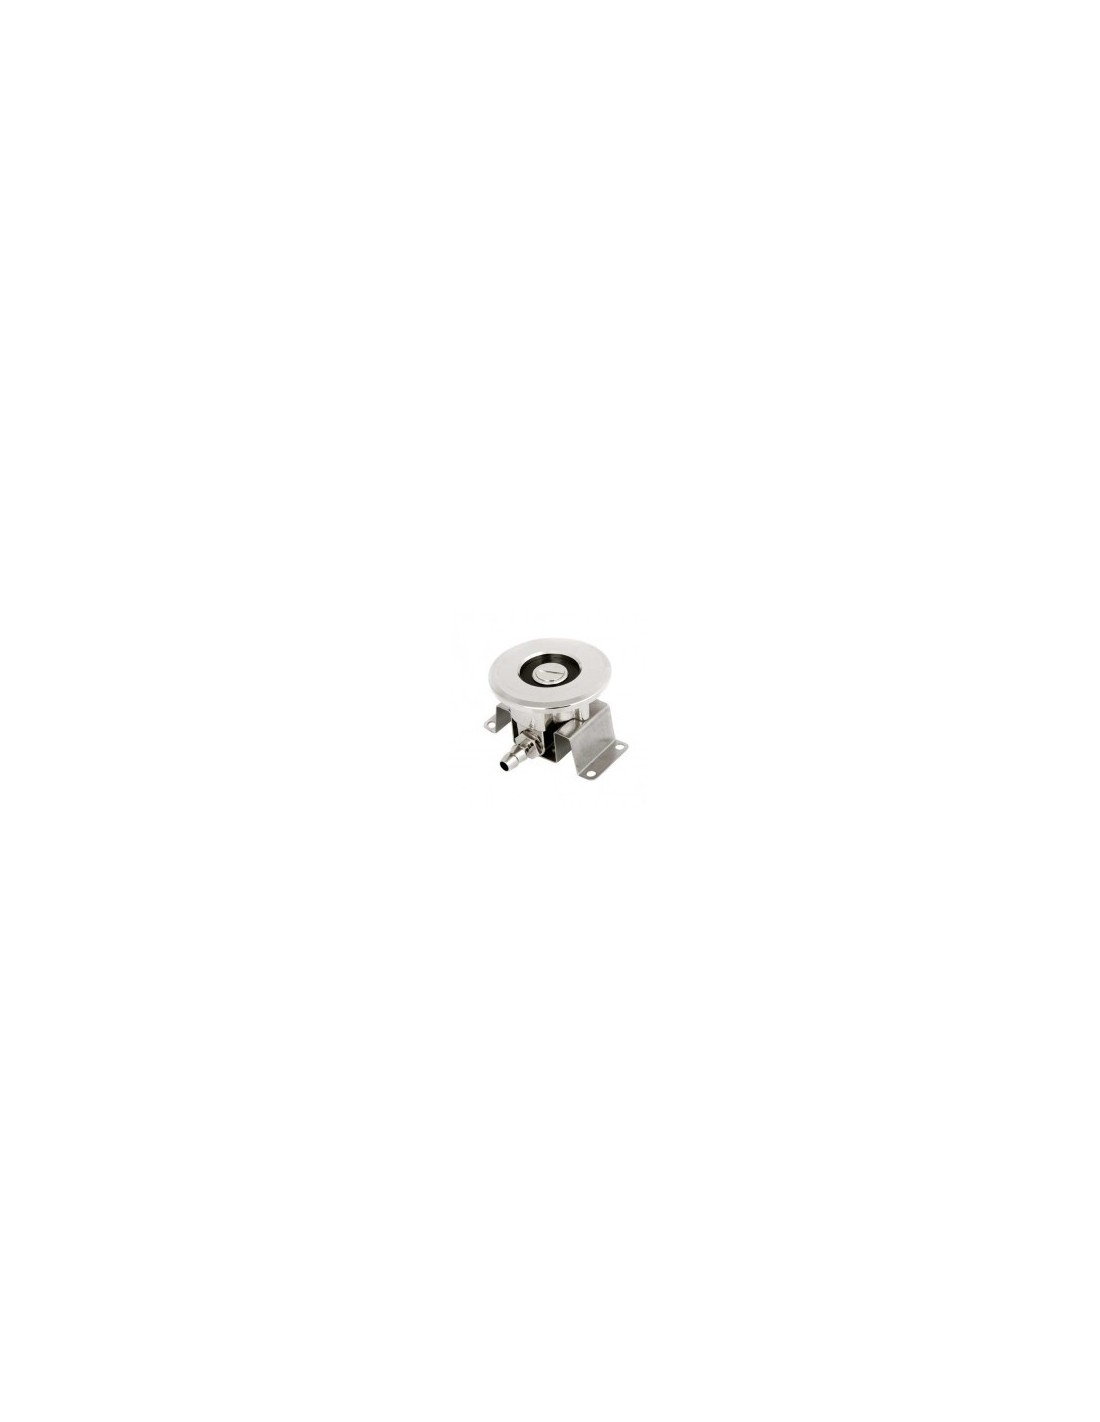 SAN01418 - Type-A cleaning adapter